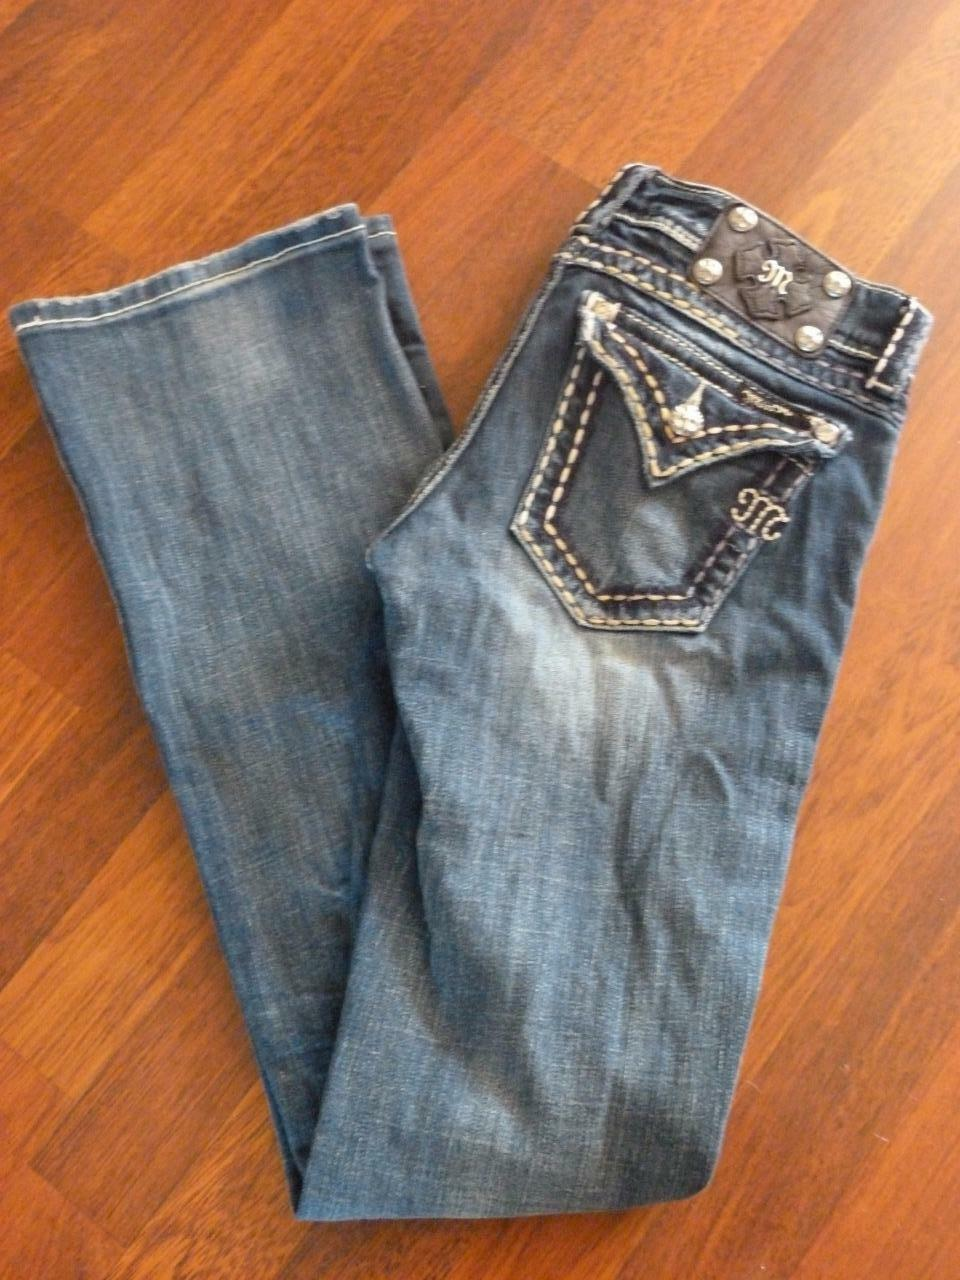 MISS ME JP55014-16 White-Stitched Bootcut Jeans...size 27X33